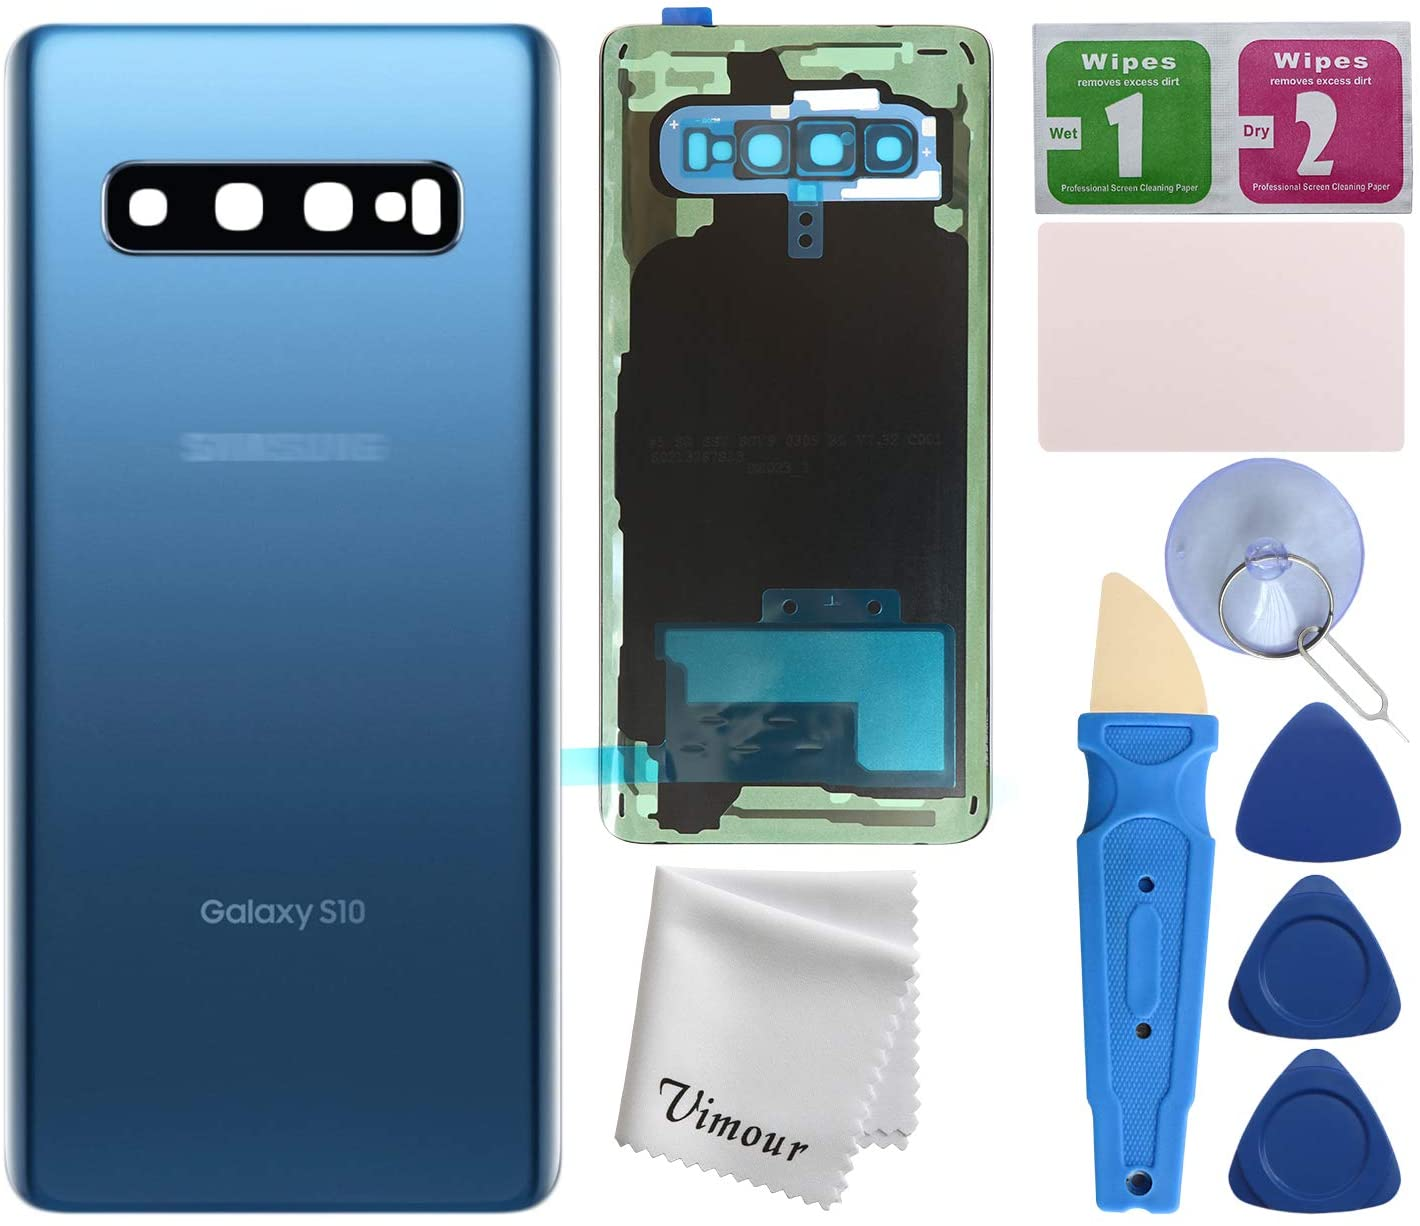 Vimour Back Cover Glass Replacement for Samsung Galaxy S10 G973U All Carriers with Pre-Installed Camera Lens, All The Adhesive and Professional Repair Tool Kits (Prism Blue)